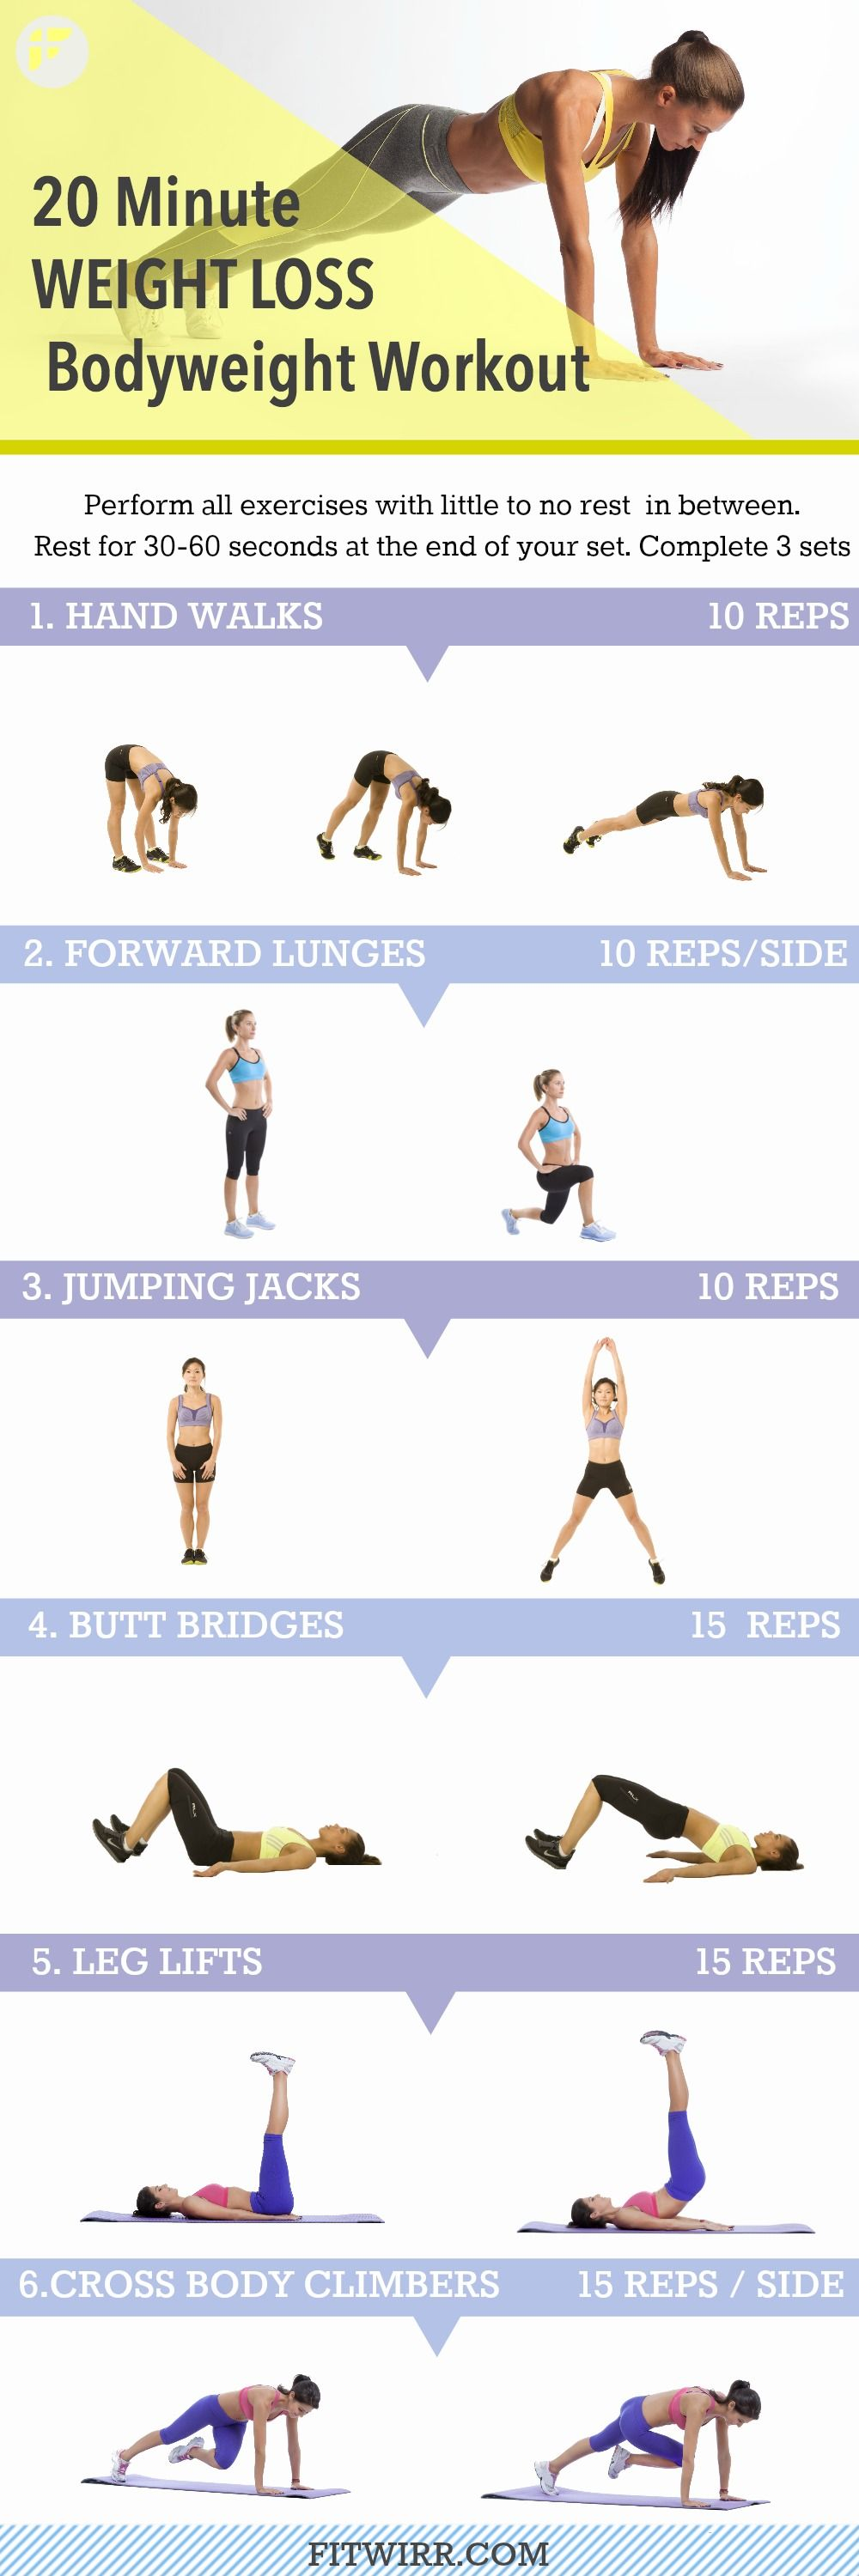 20 Minute Weight Loss Workout for Women